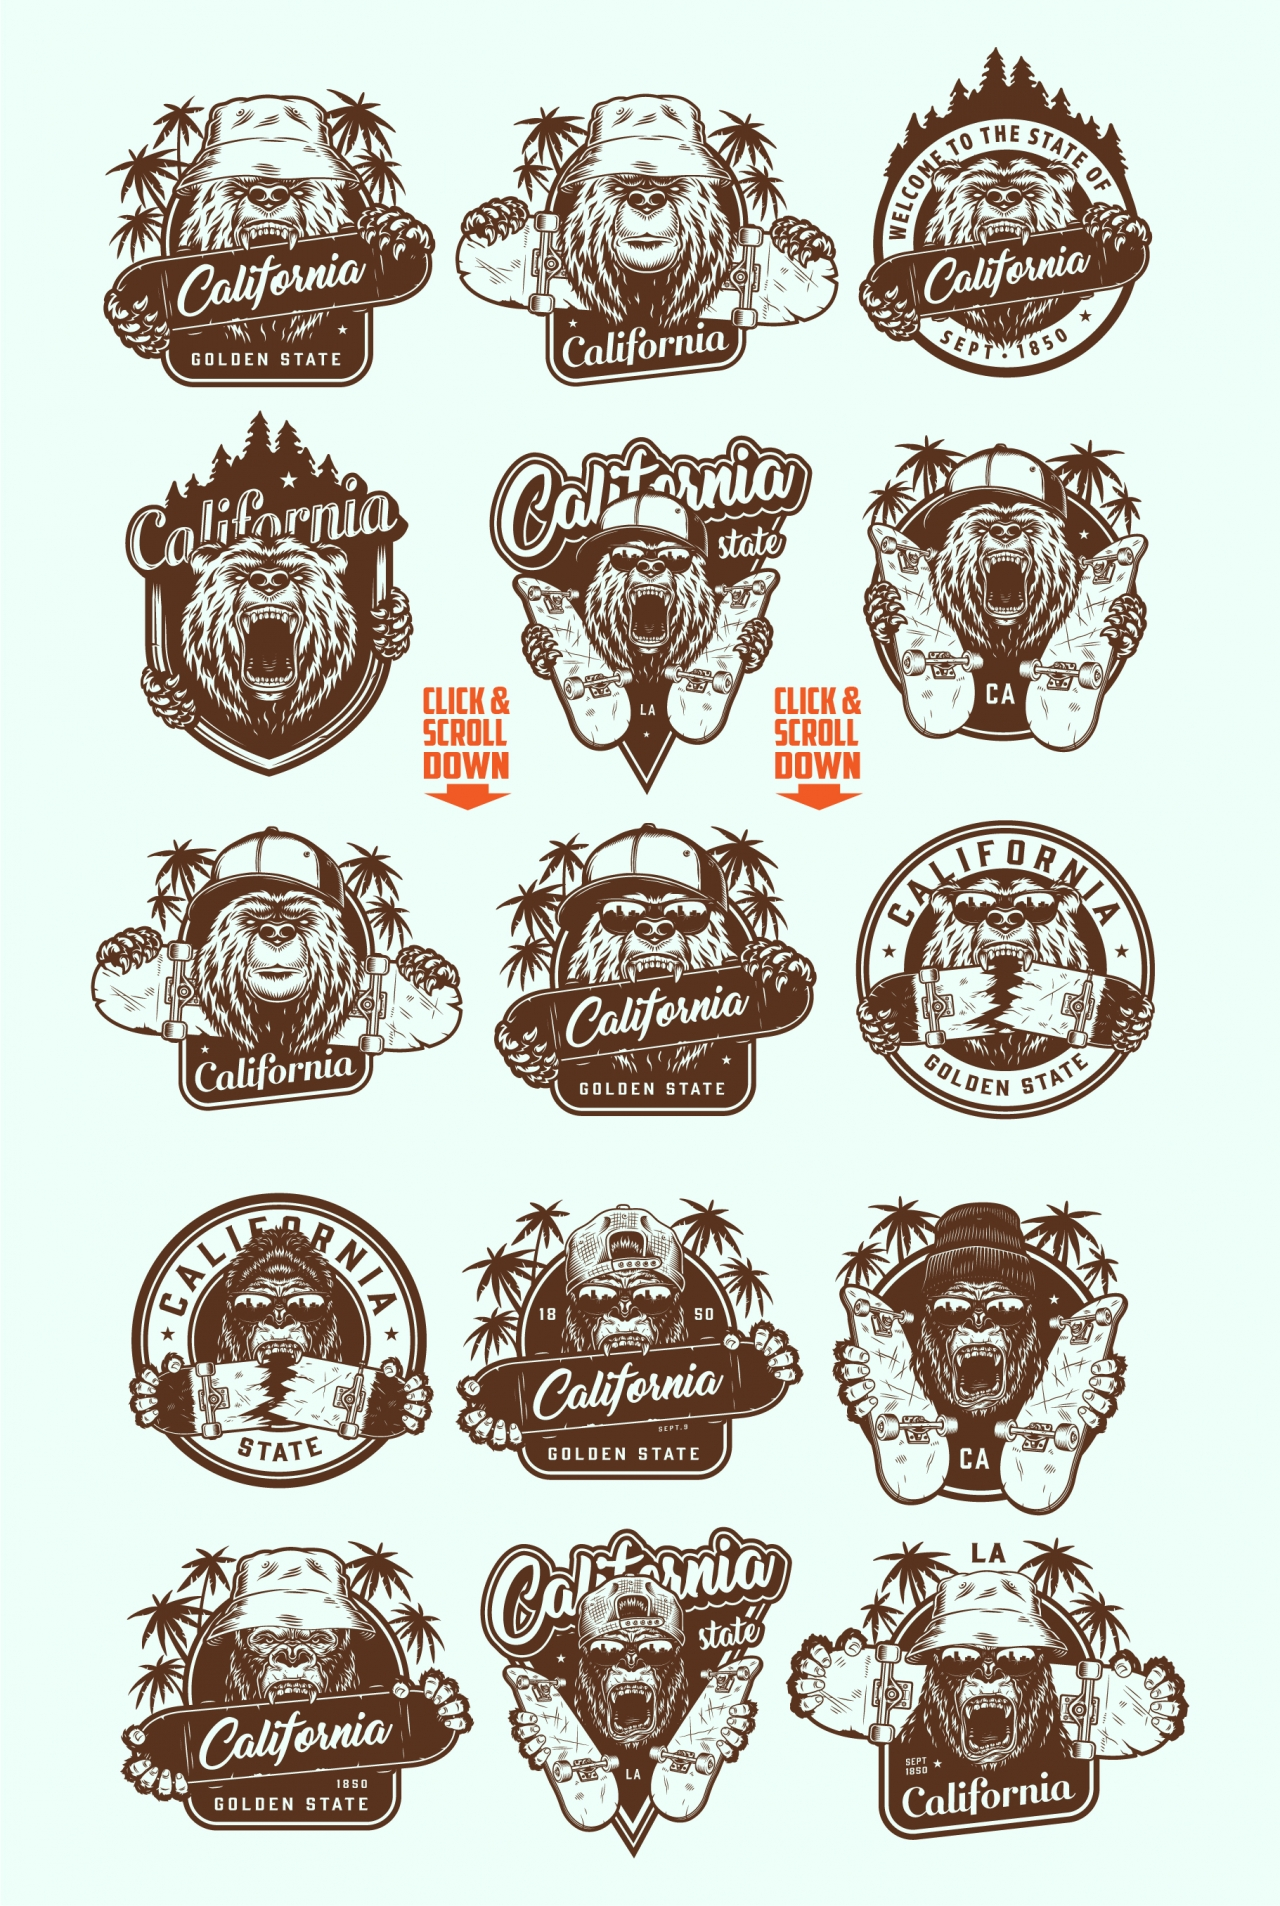 Vintage California badges collection with angry bear and gorilla heads in different headwears with skateboards on light background. Vector art